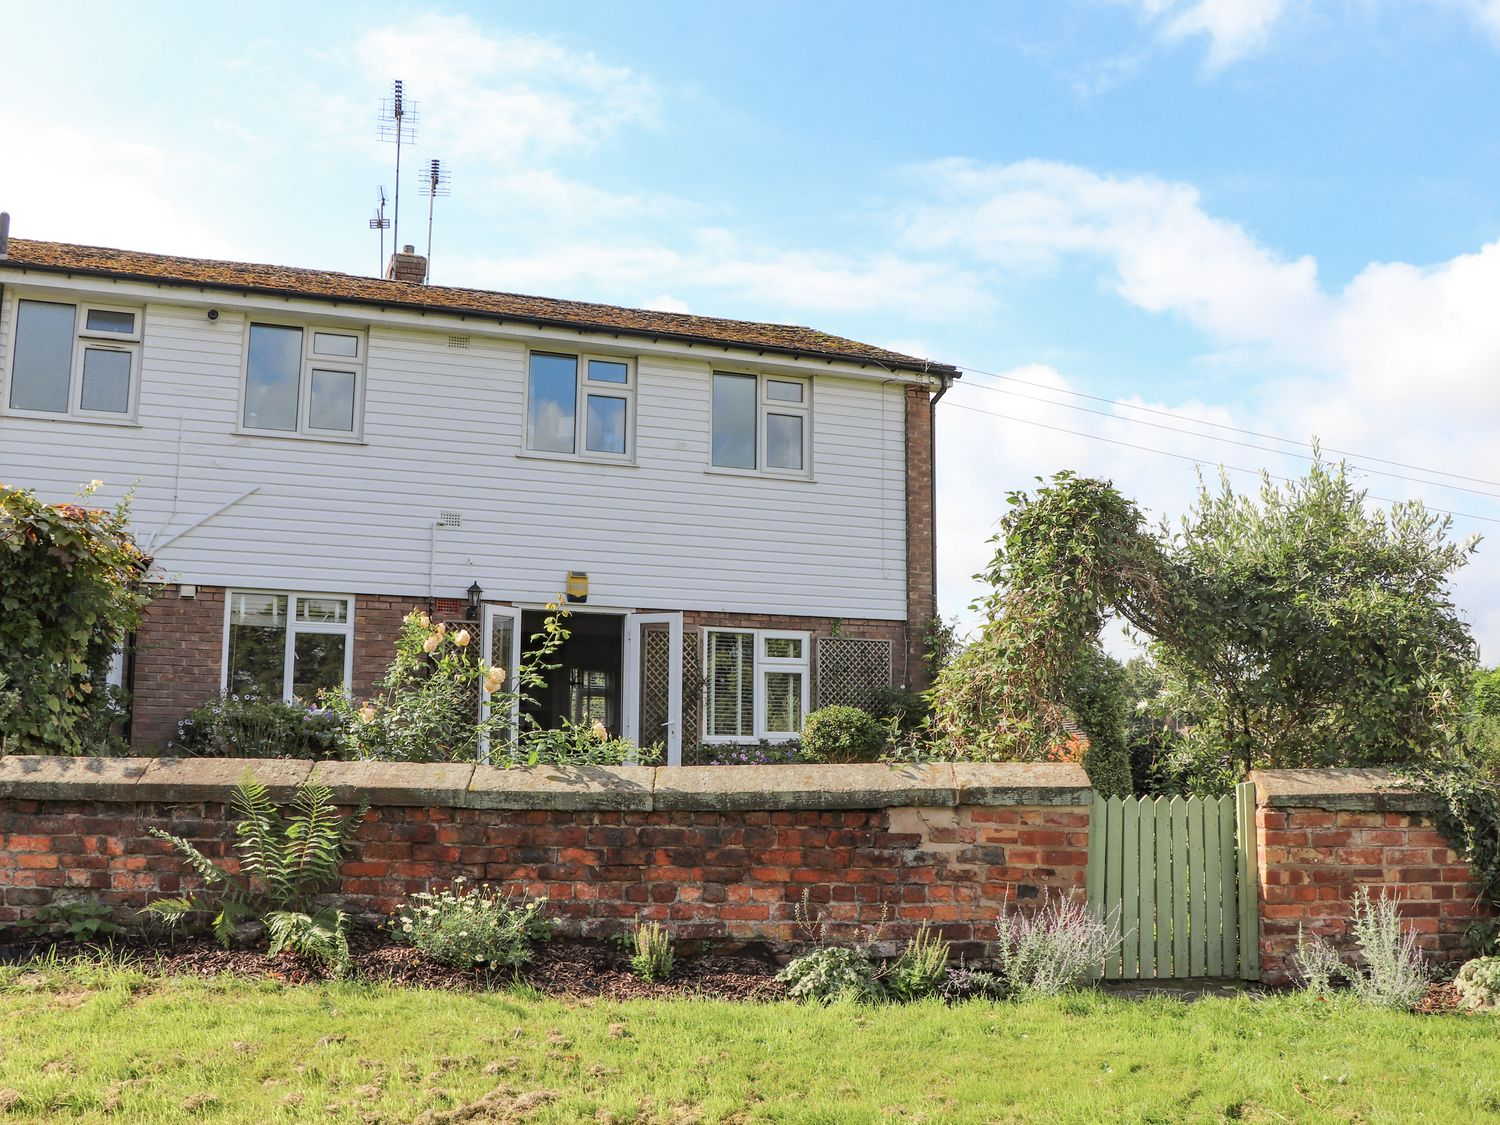 12 Edgar Place - North Wales - 1084623 - photo 1